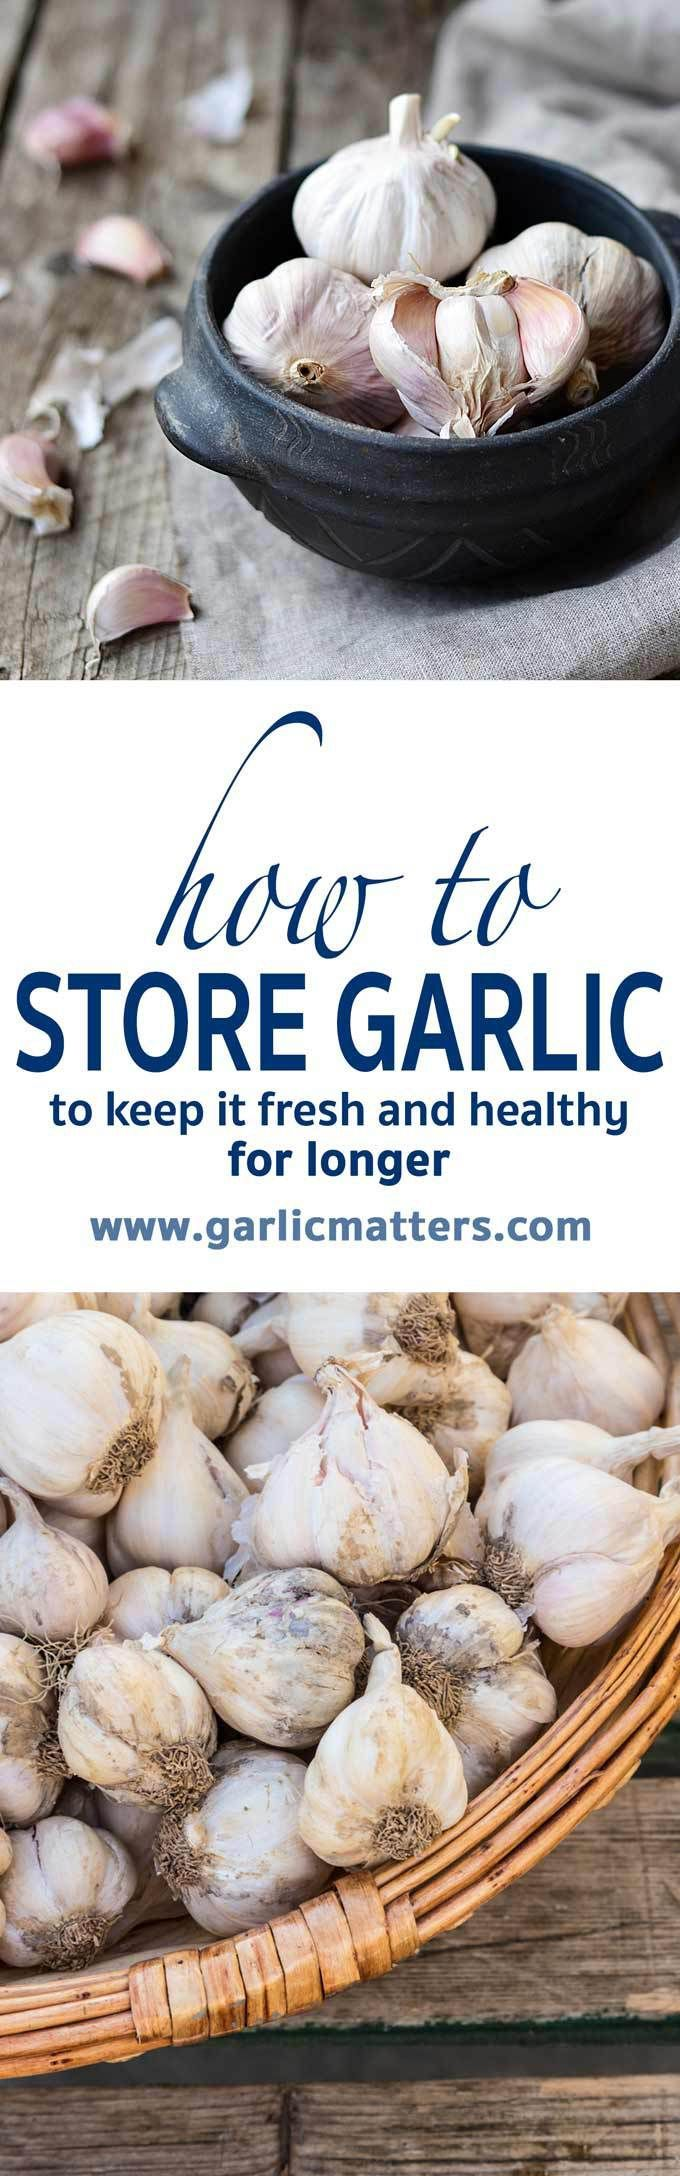 How to store garlic and keep it fresh for longer. Storing garlic correctly will extend its shelf life, preserve the flavor, prevent sprouting and dangerous for human health mould.